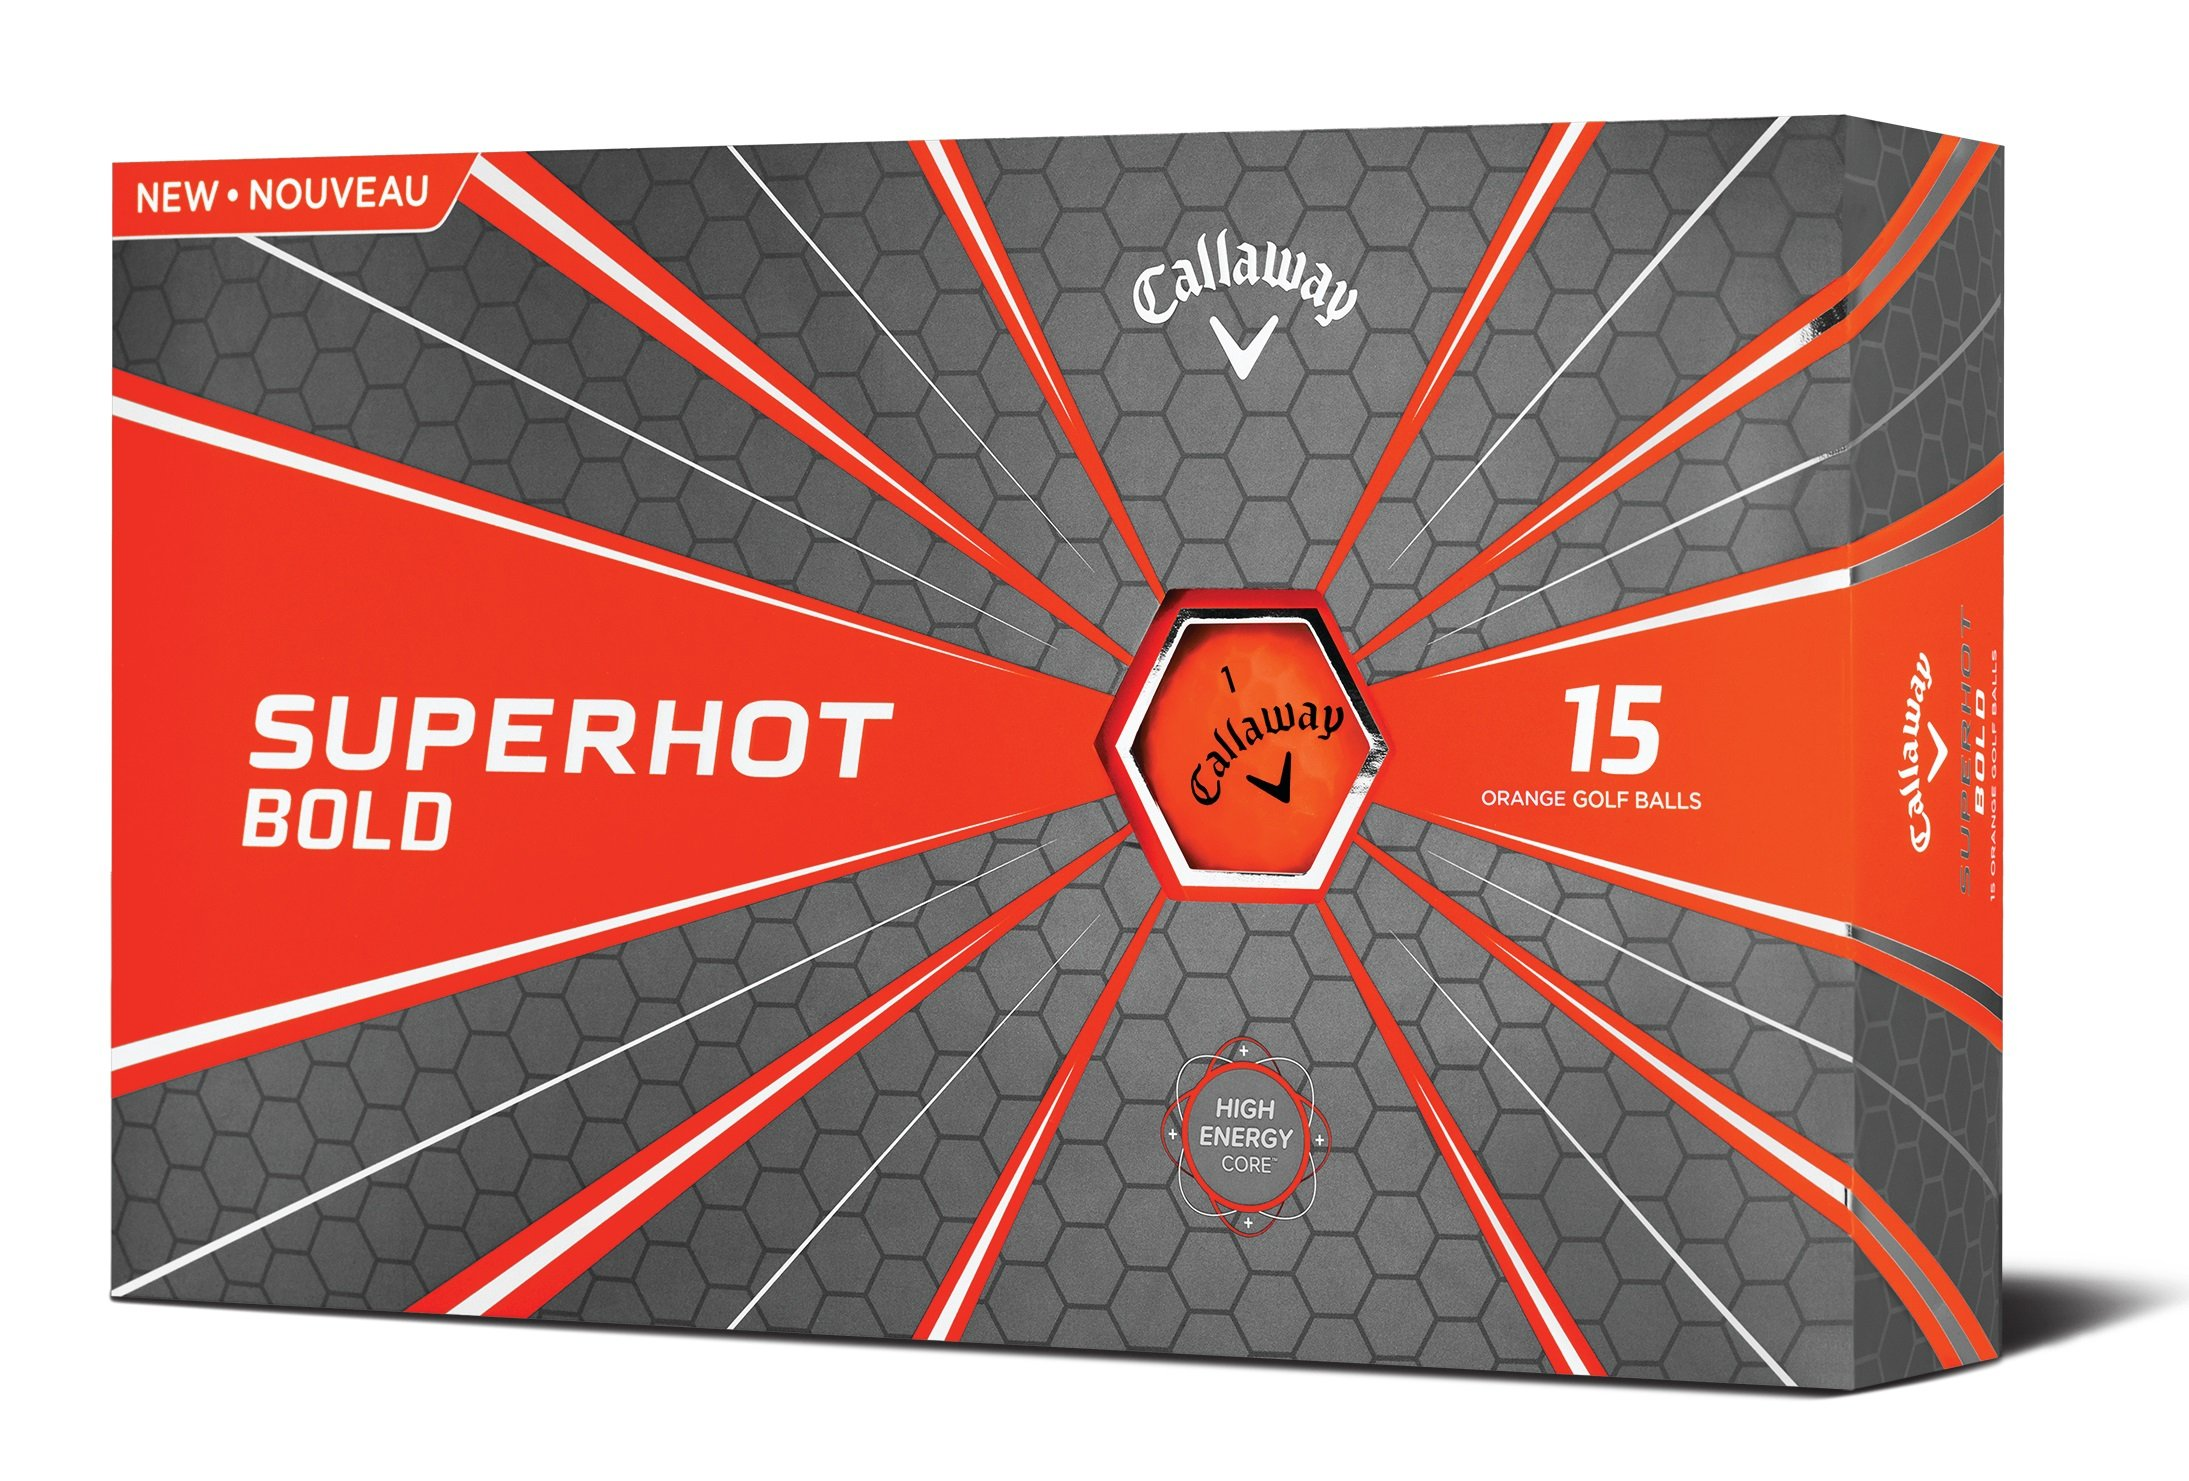 Callaway Superhot '18 Golf Ball (15 Ball Pack, Bold Orange) by Callaway